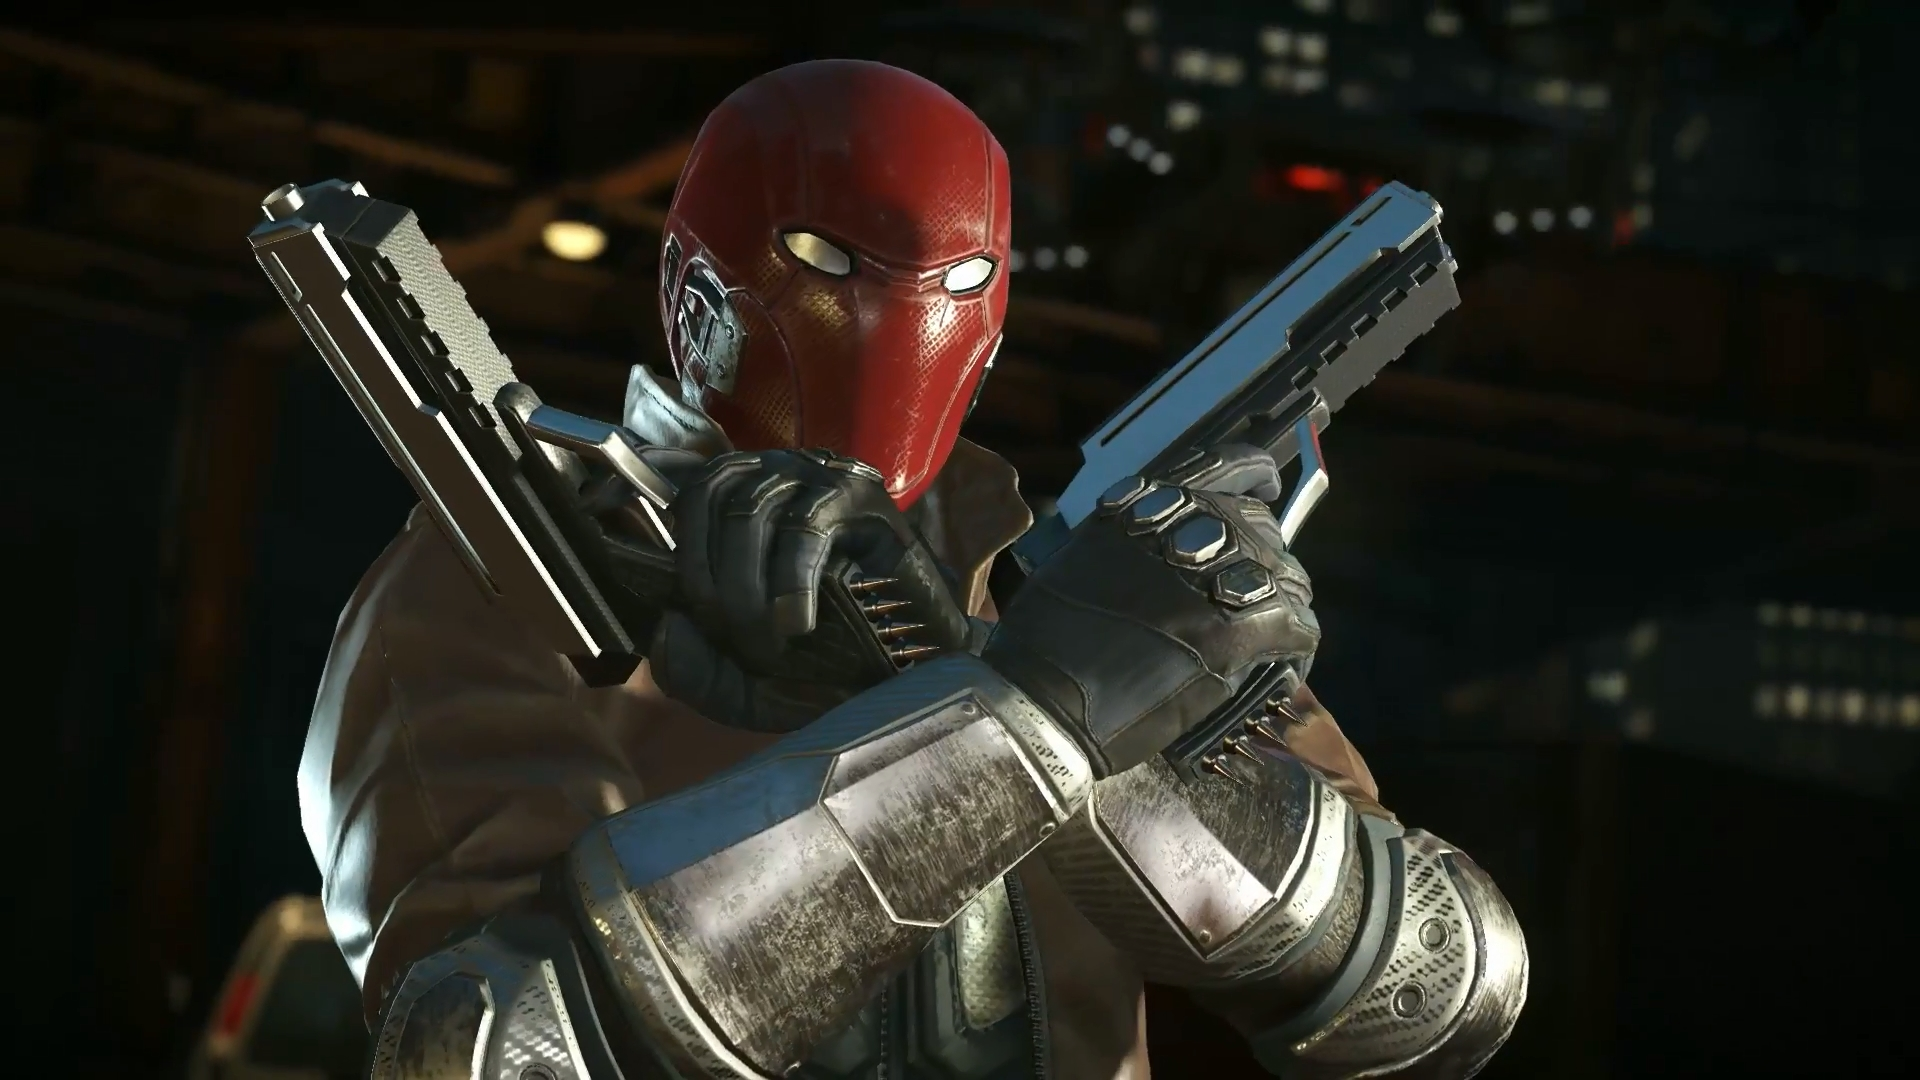 Watch The Arkham Knight Esque Look For Red Hood In